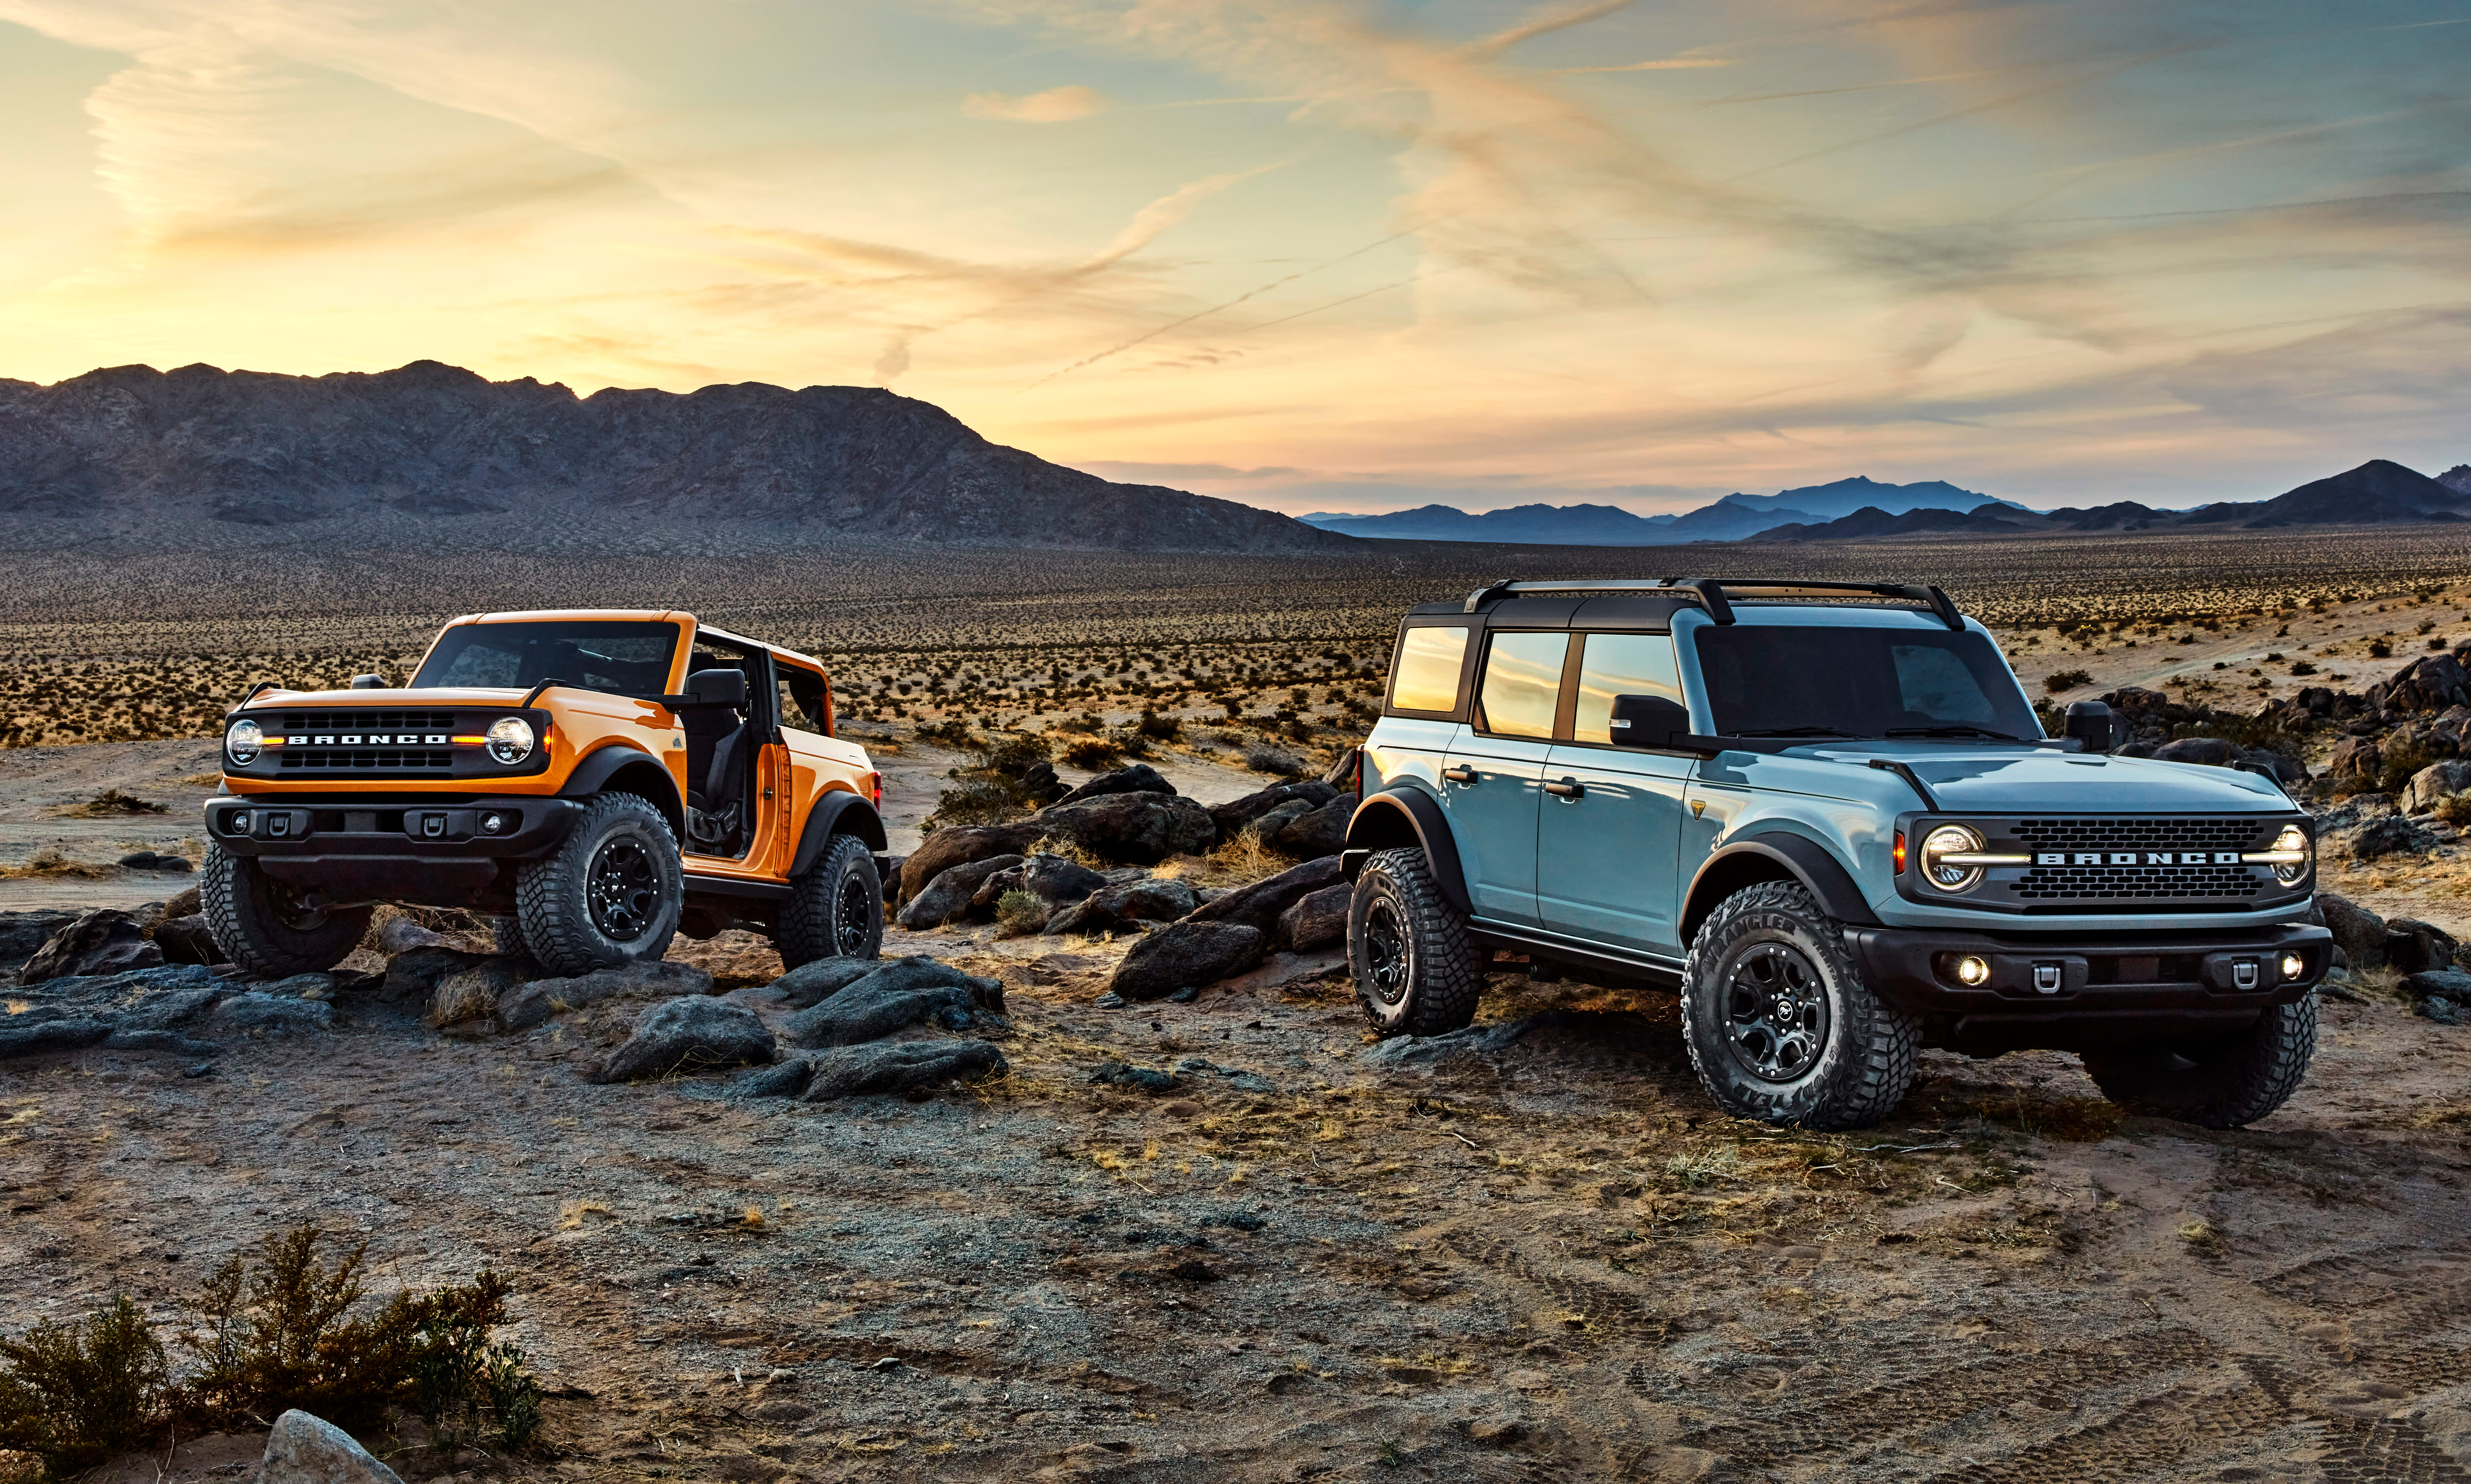 Ford unveils new Bronco as off-road open-air Jeep rival for under $30000 – CNBC